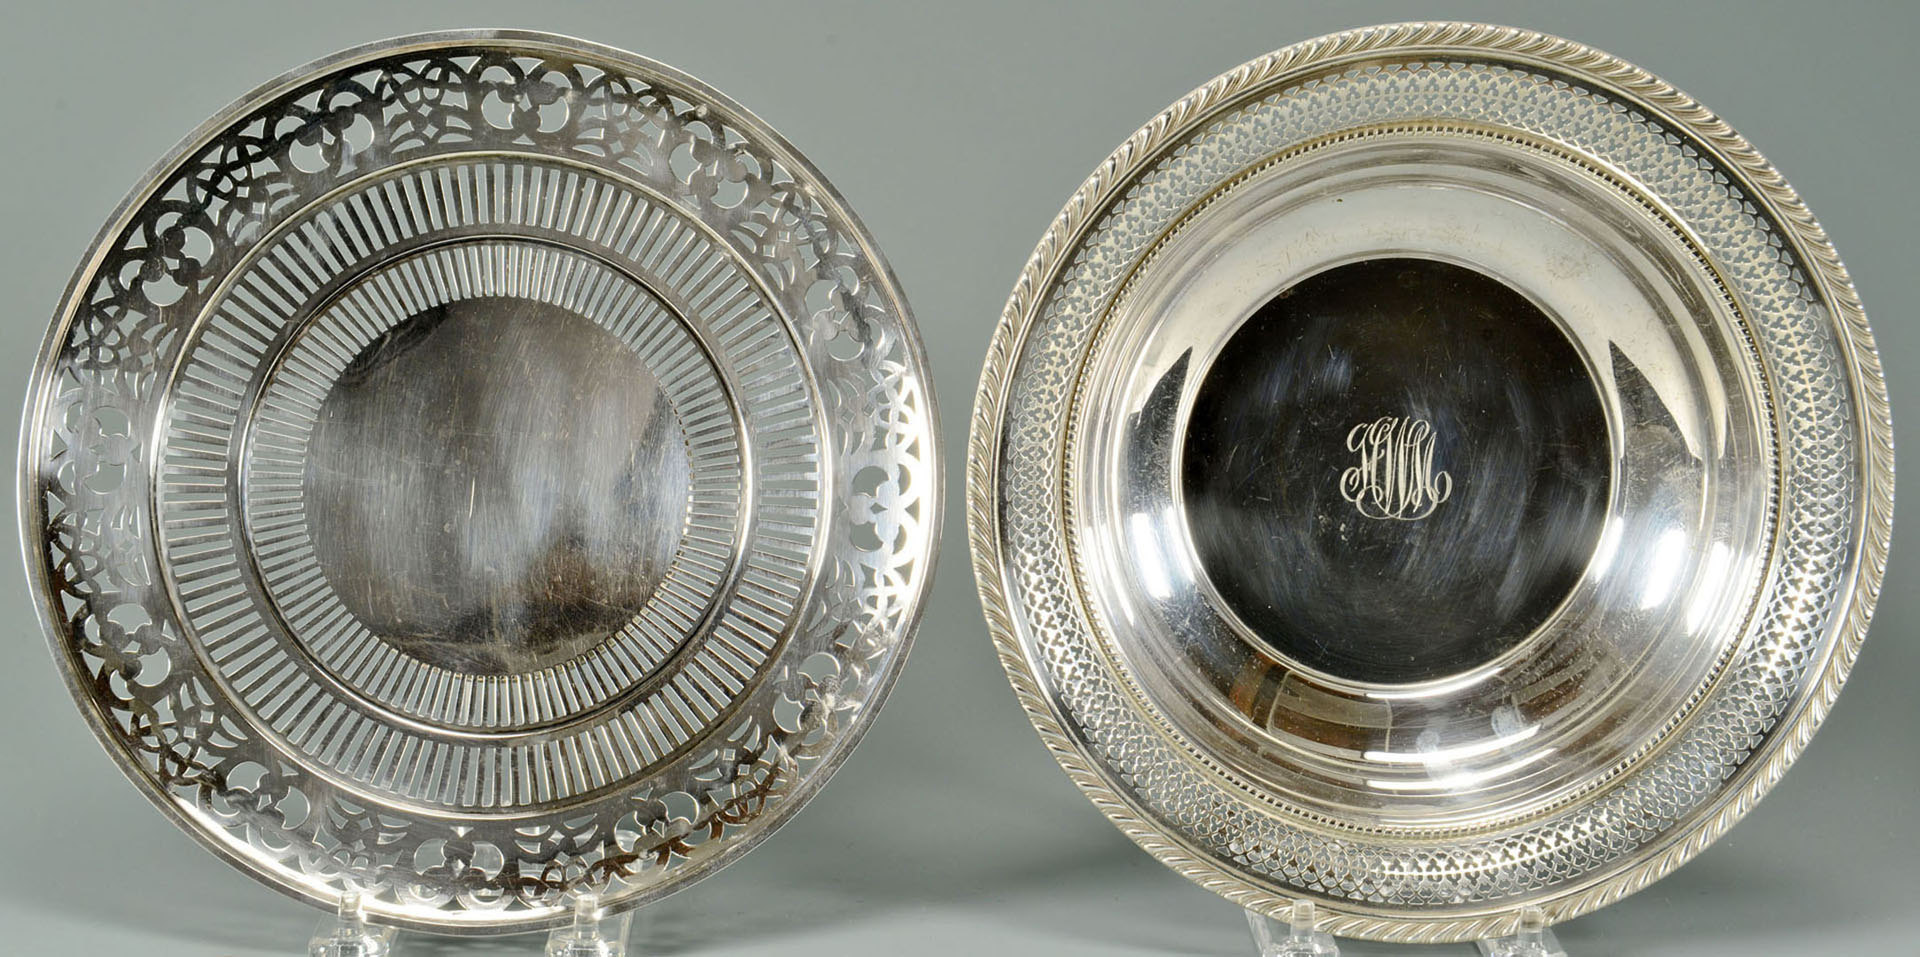 Lot 489: Silver Vegetable Dish w/ pierced border & Footed C